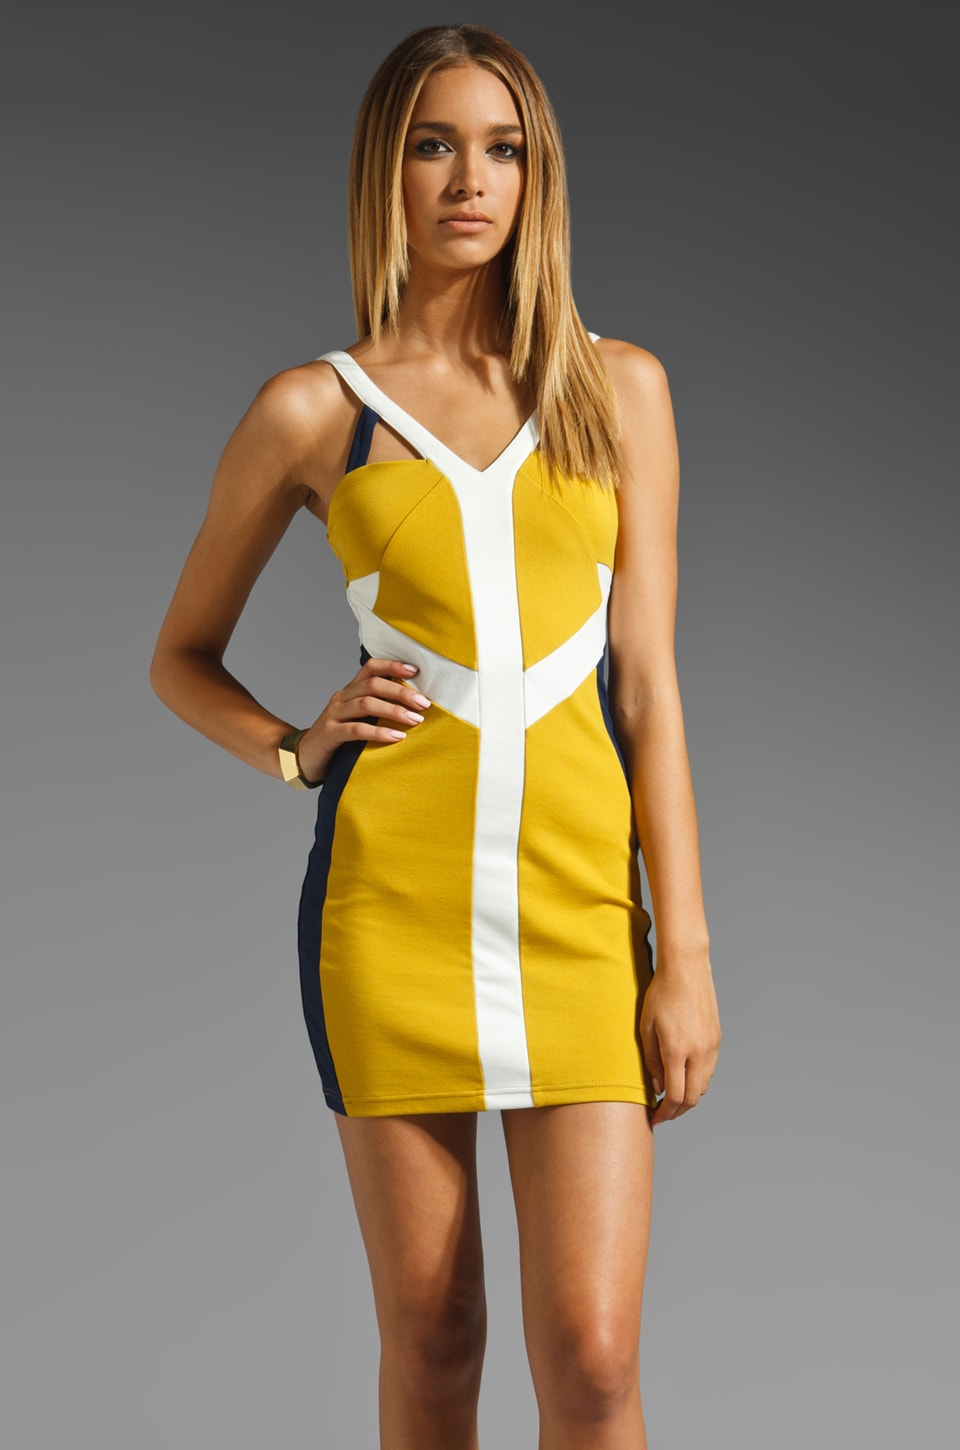 keepsake Two Words Body Dress in Mustard/Navy/Ivory